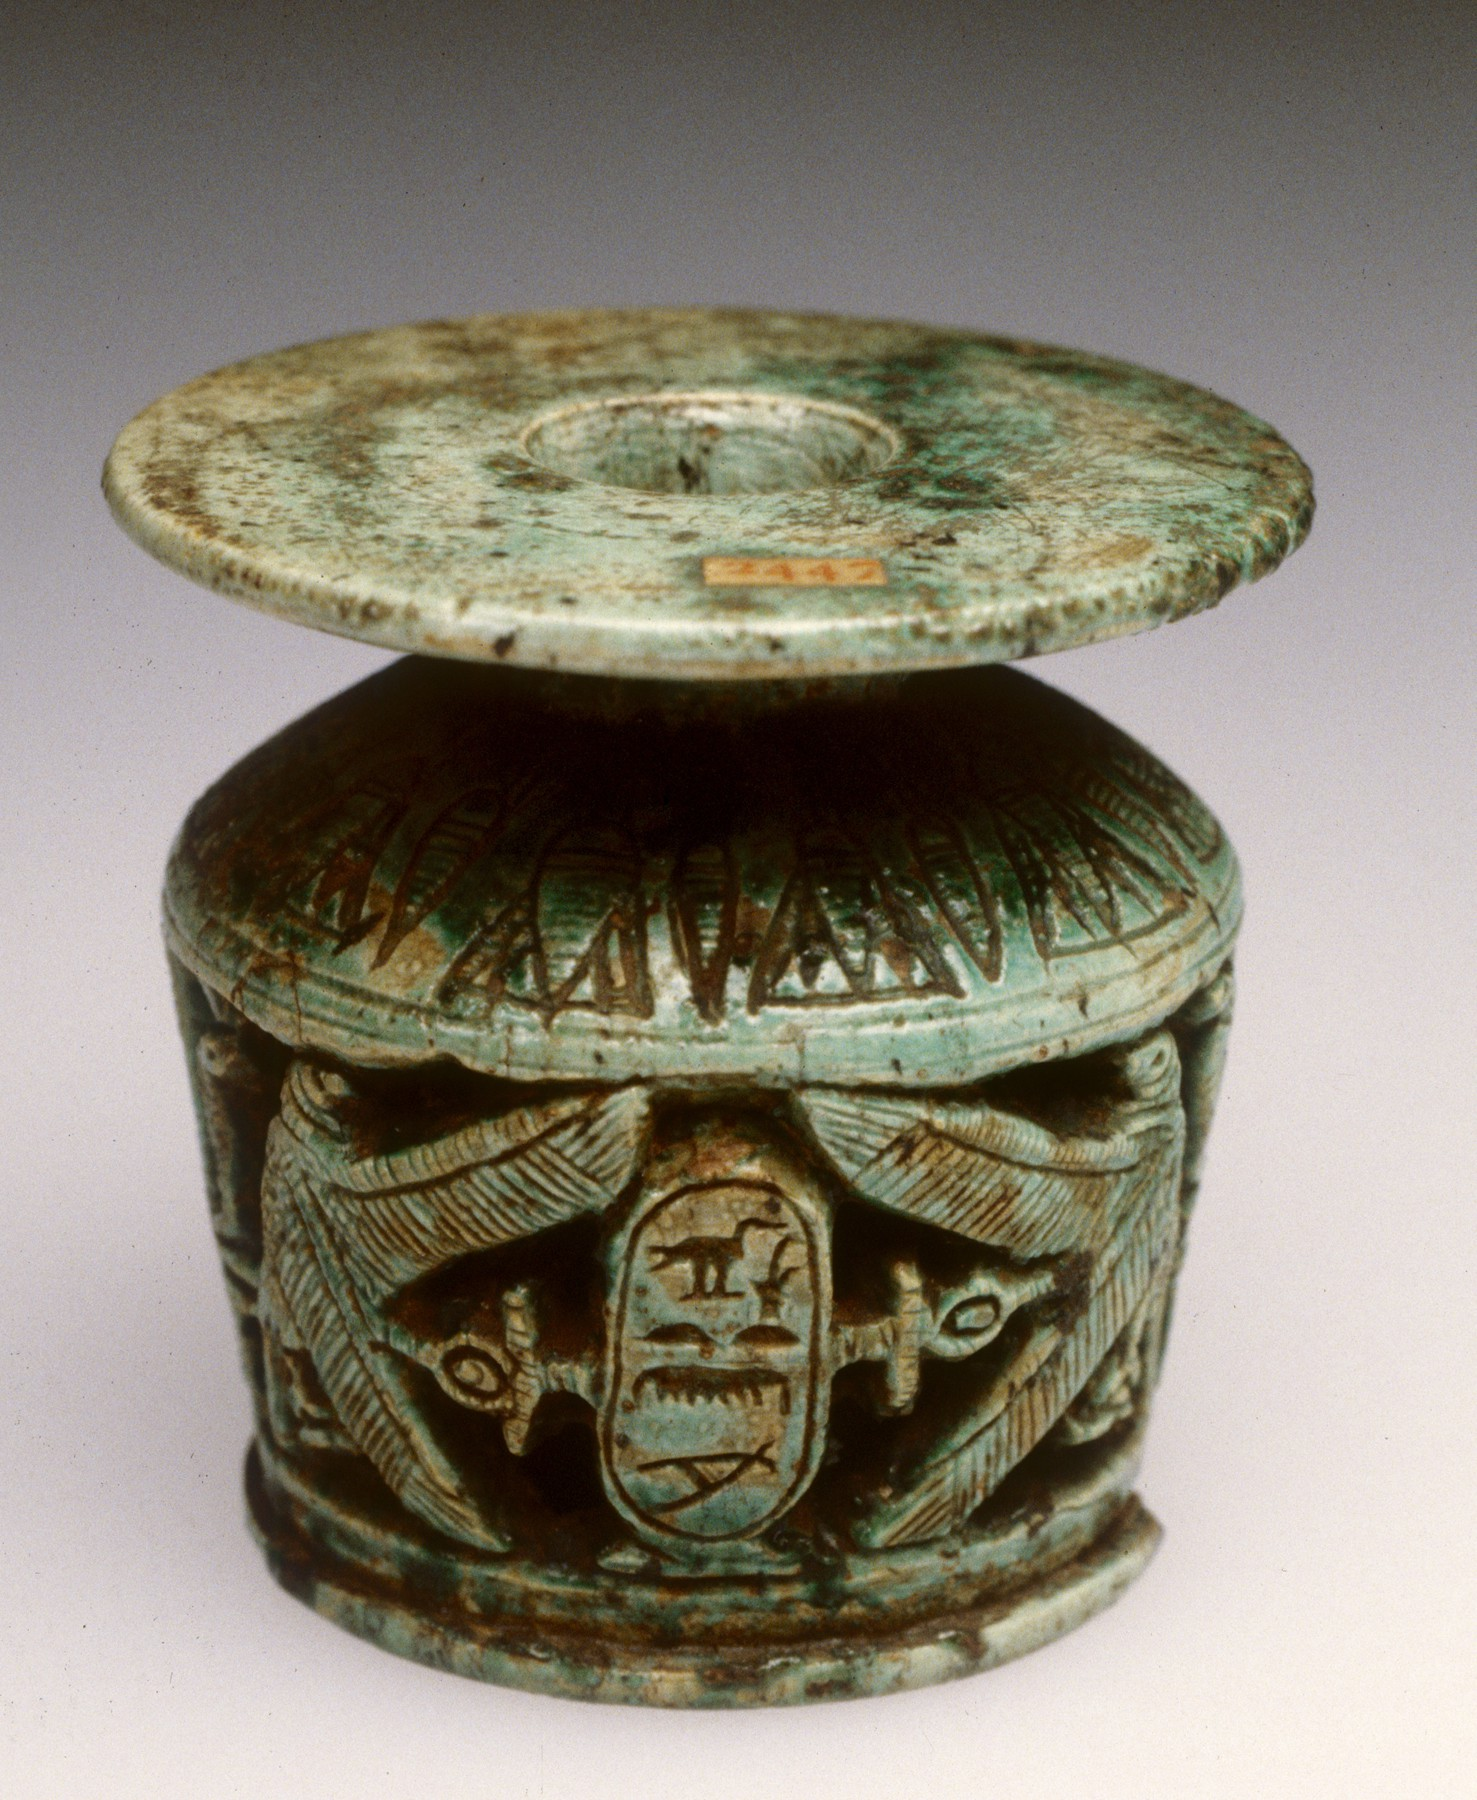 This small cosmetic vessel belonged to Meretnubt, a daughter of King Thutmose I (1504-1492 BCE), and would have held some of her makeup. The Egyptians loved putting their beautifying liquids into cute little jars.   Courtesy of the Walters Art Museum